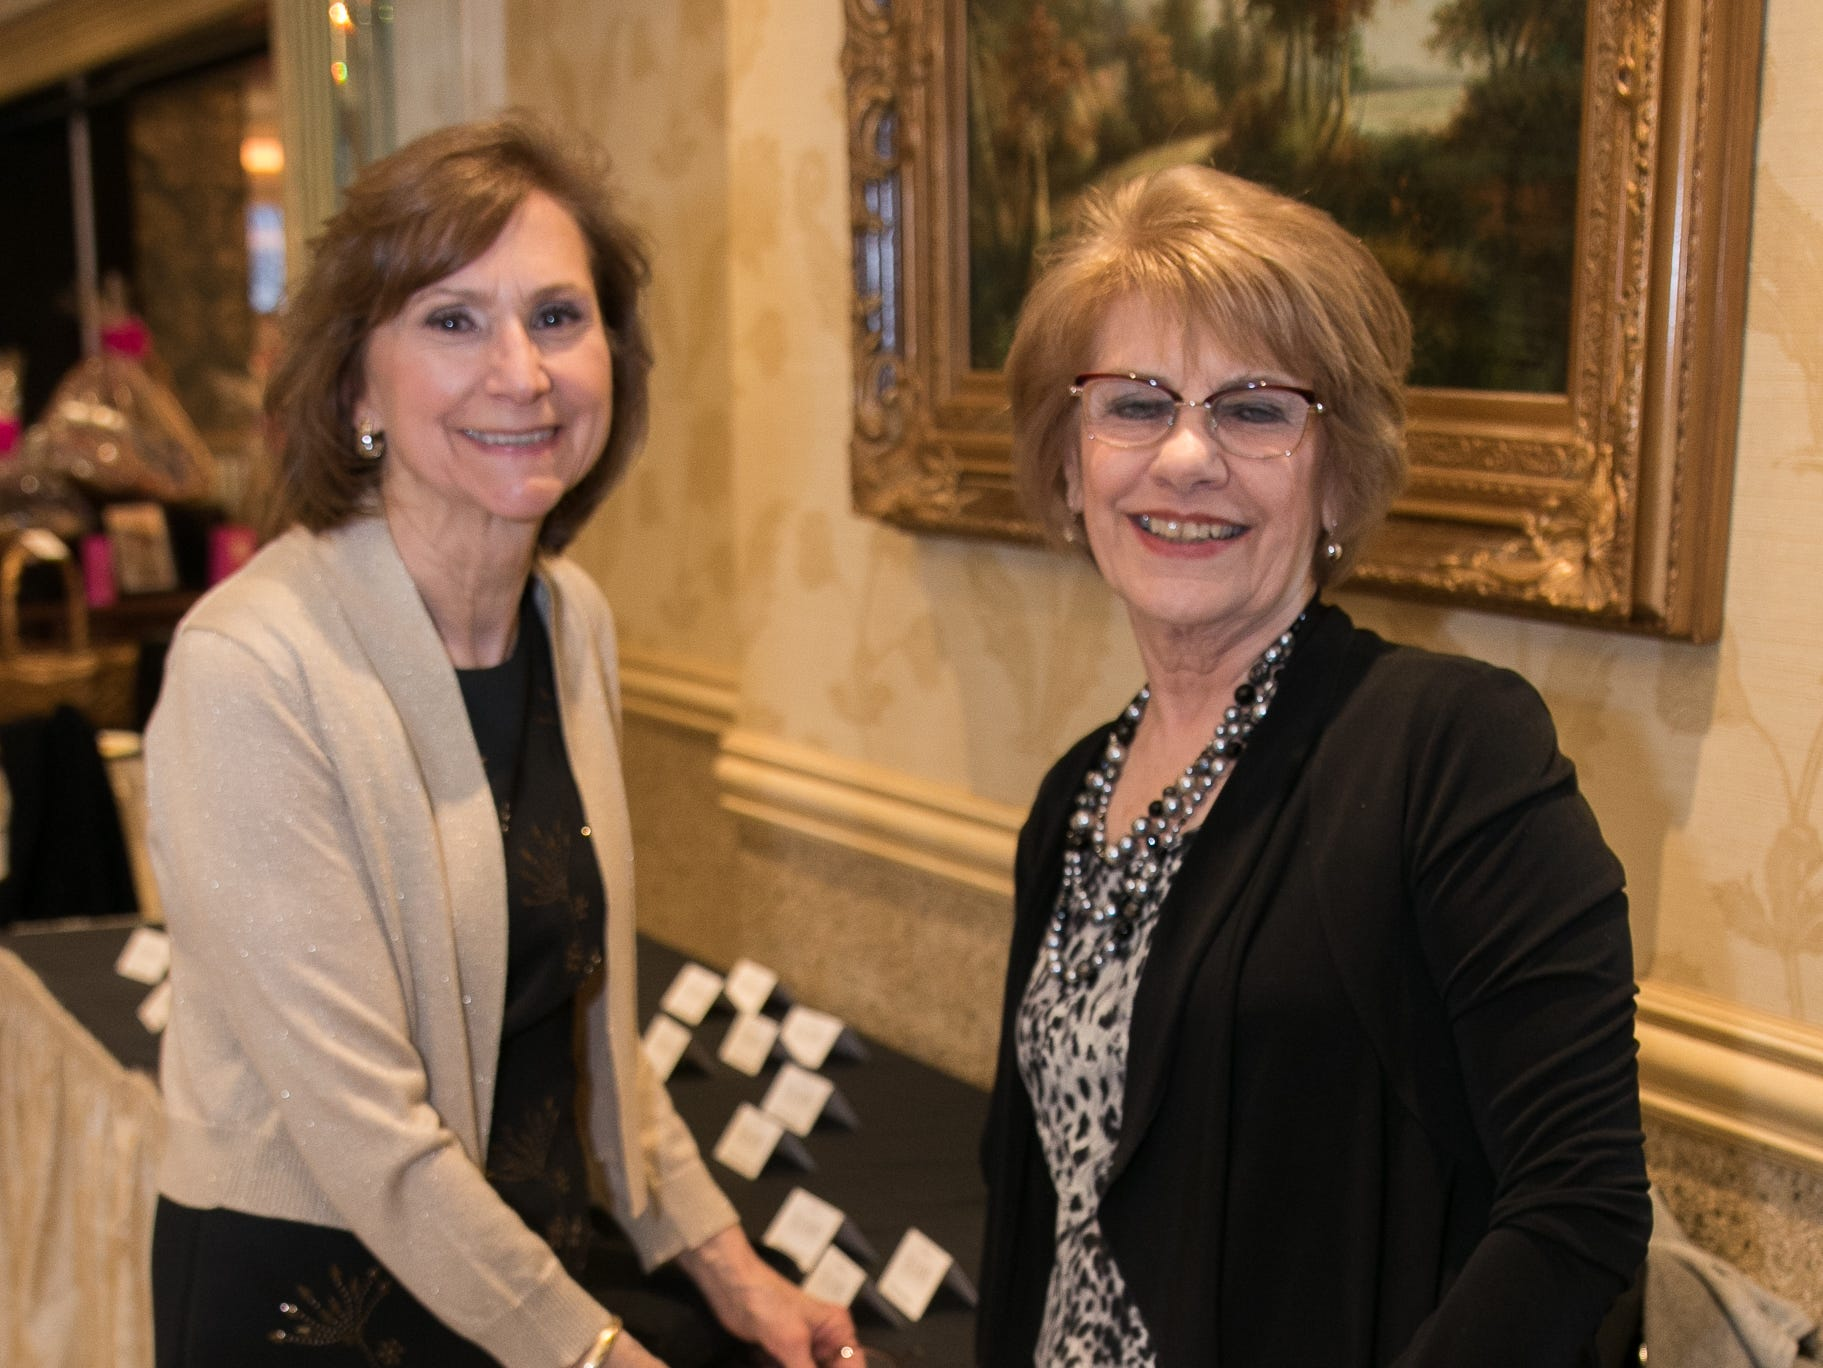 Martha Kuhnert, Veronica Dalcero. New Hope, a Pregnancy Resource Center, held their annual gala at Seasons in Washington Township. 04/05/2019